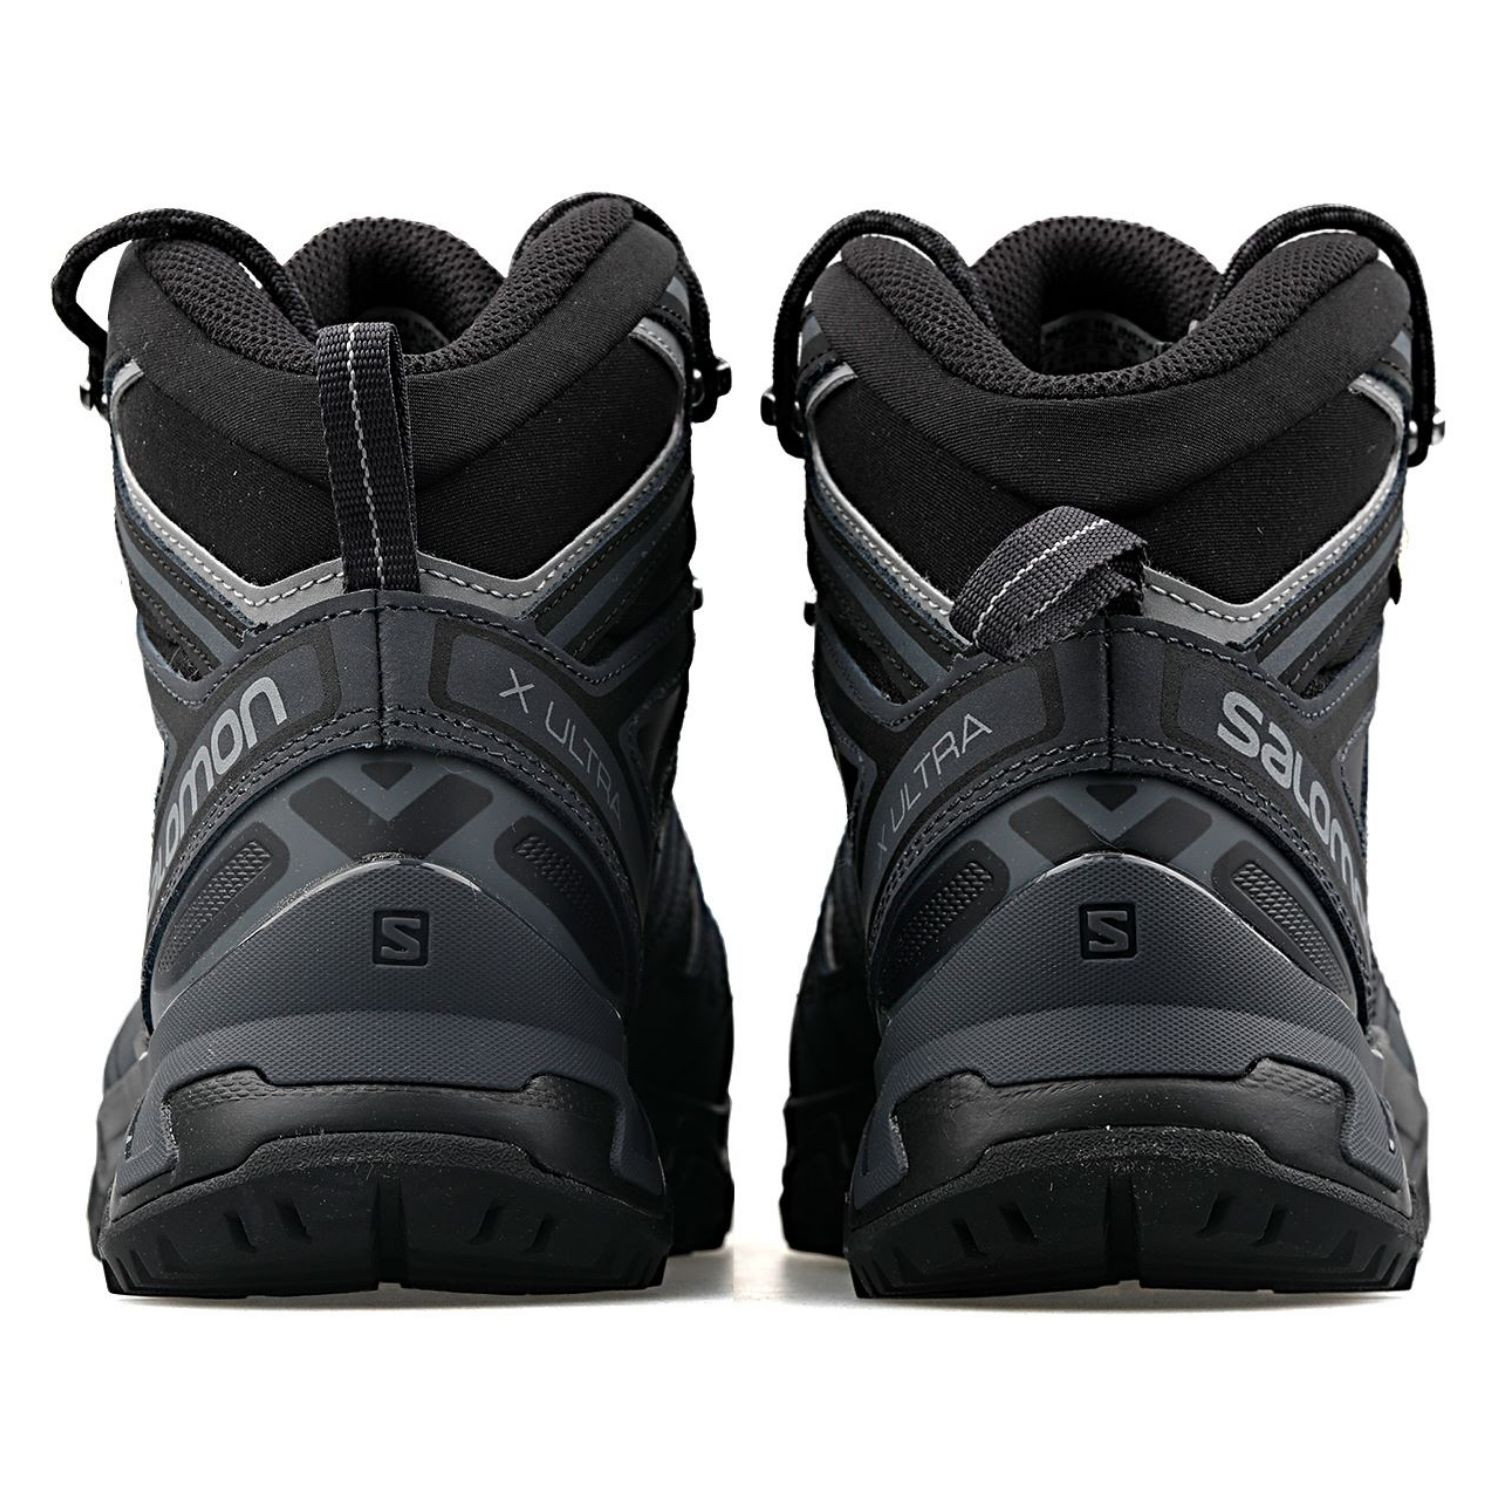 SALOMON X Ultra 3 MID GTX Black Čierna uk 9